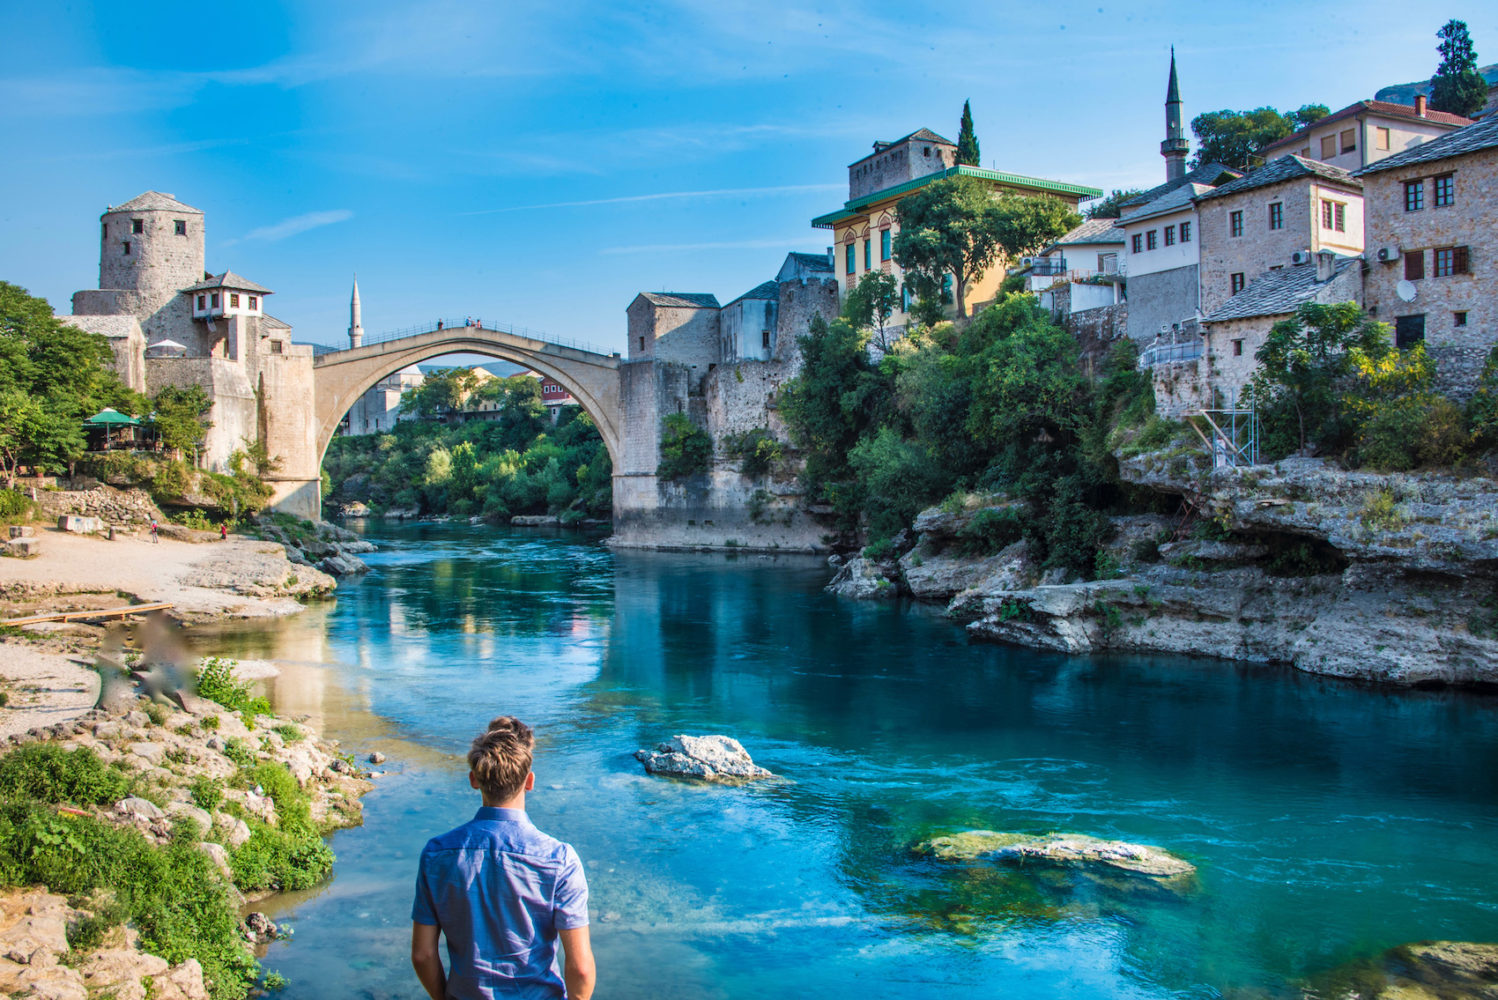 30 Pictures That Will Make You Want to Visit the Balkans